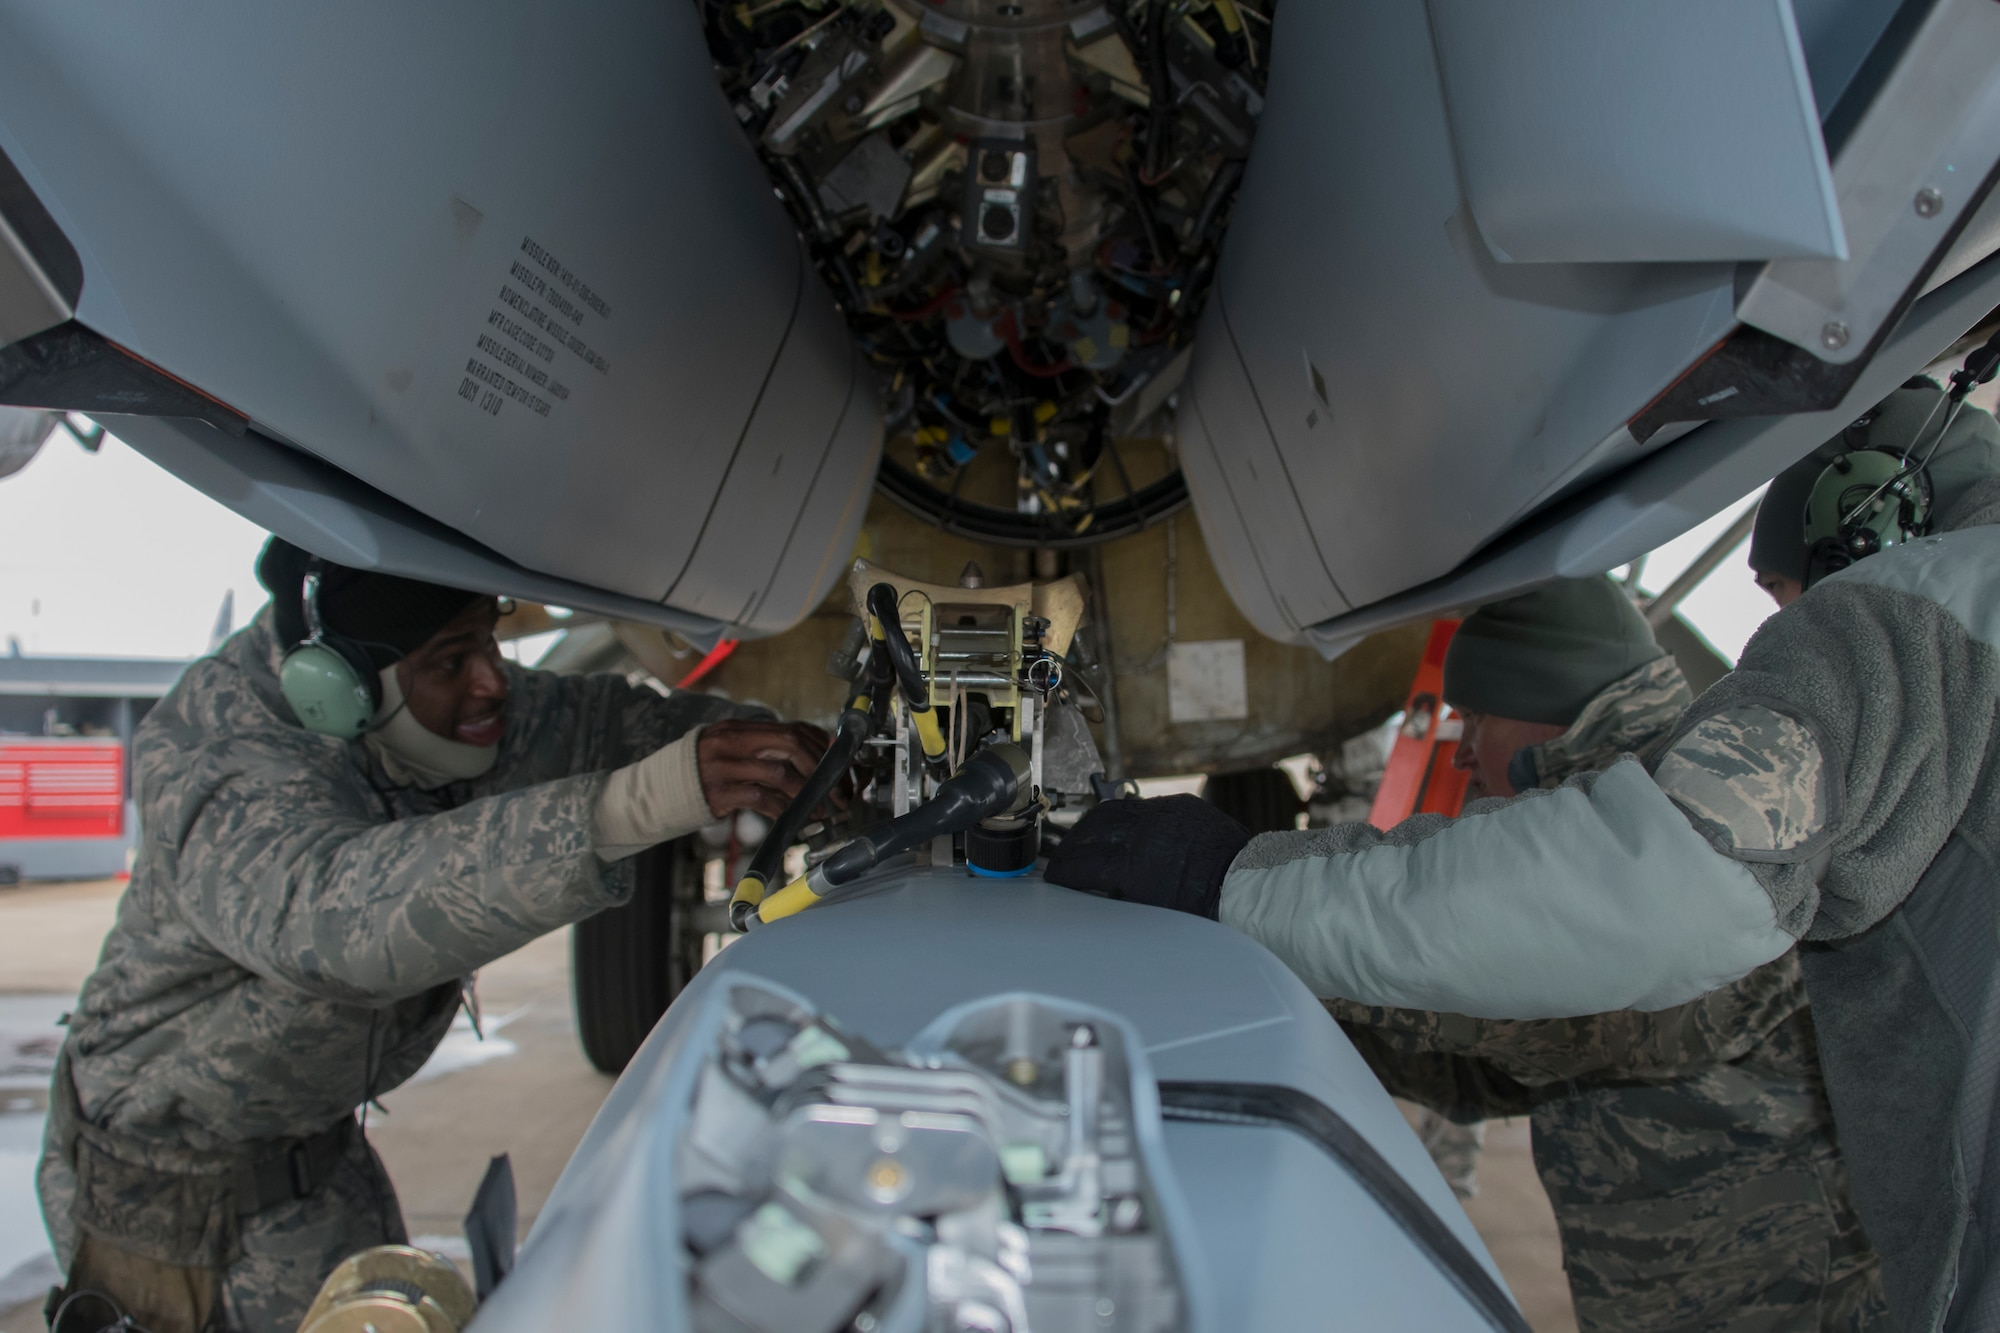 Aircraft armament systems specialists assigned to the 307th Aircraft Maintenance Squadron unload an AGM-158 Joint Air-to-Surface Standoff Missile from a Conventional Rotary Launcher at Barksdale Air Force Base, Louisiana, February 9, 2019. The munitions were placed on the CRL by Reserve Citizen Airmen during a test to see if the weapons platform could power on eight JASSM's at one time.  (U.S. Air Force photo by Airman 1st Class Maxwell Daigle)